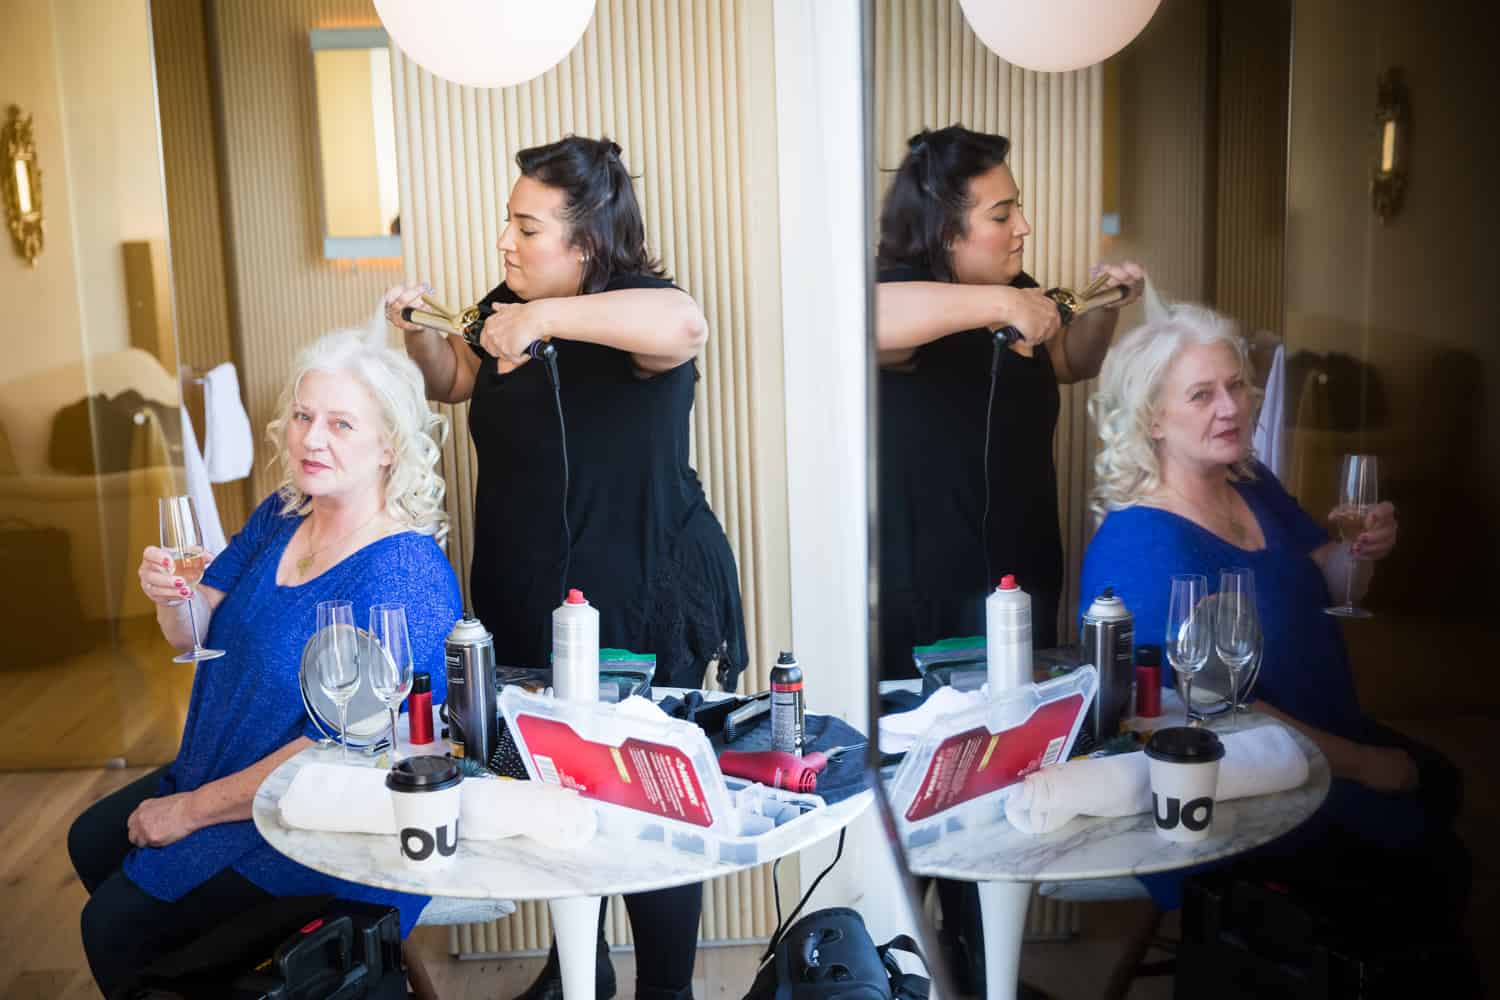 Mother of bride getting hair fixed with reflection in wall